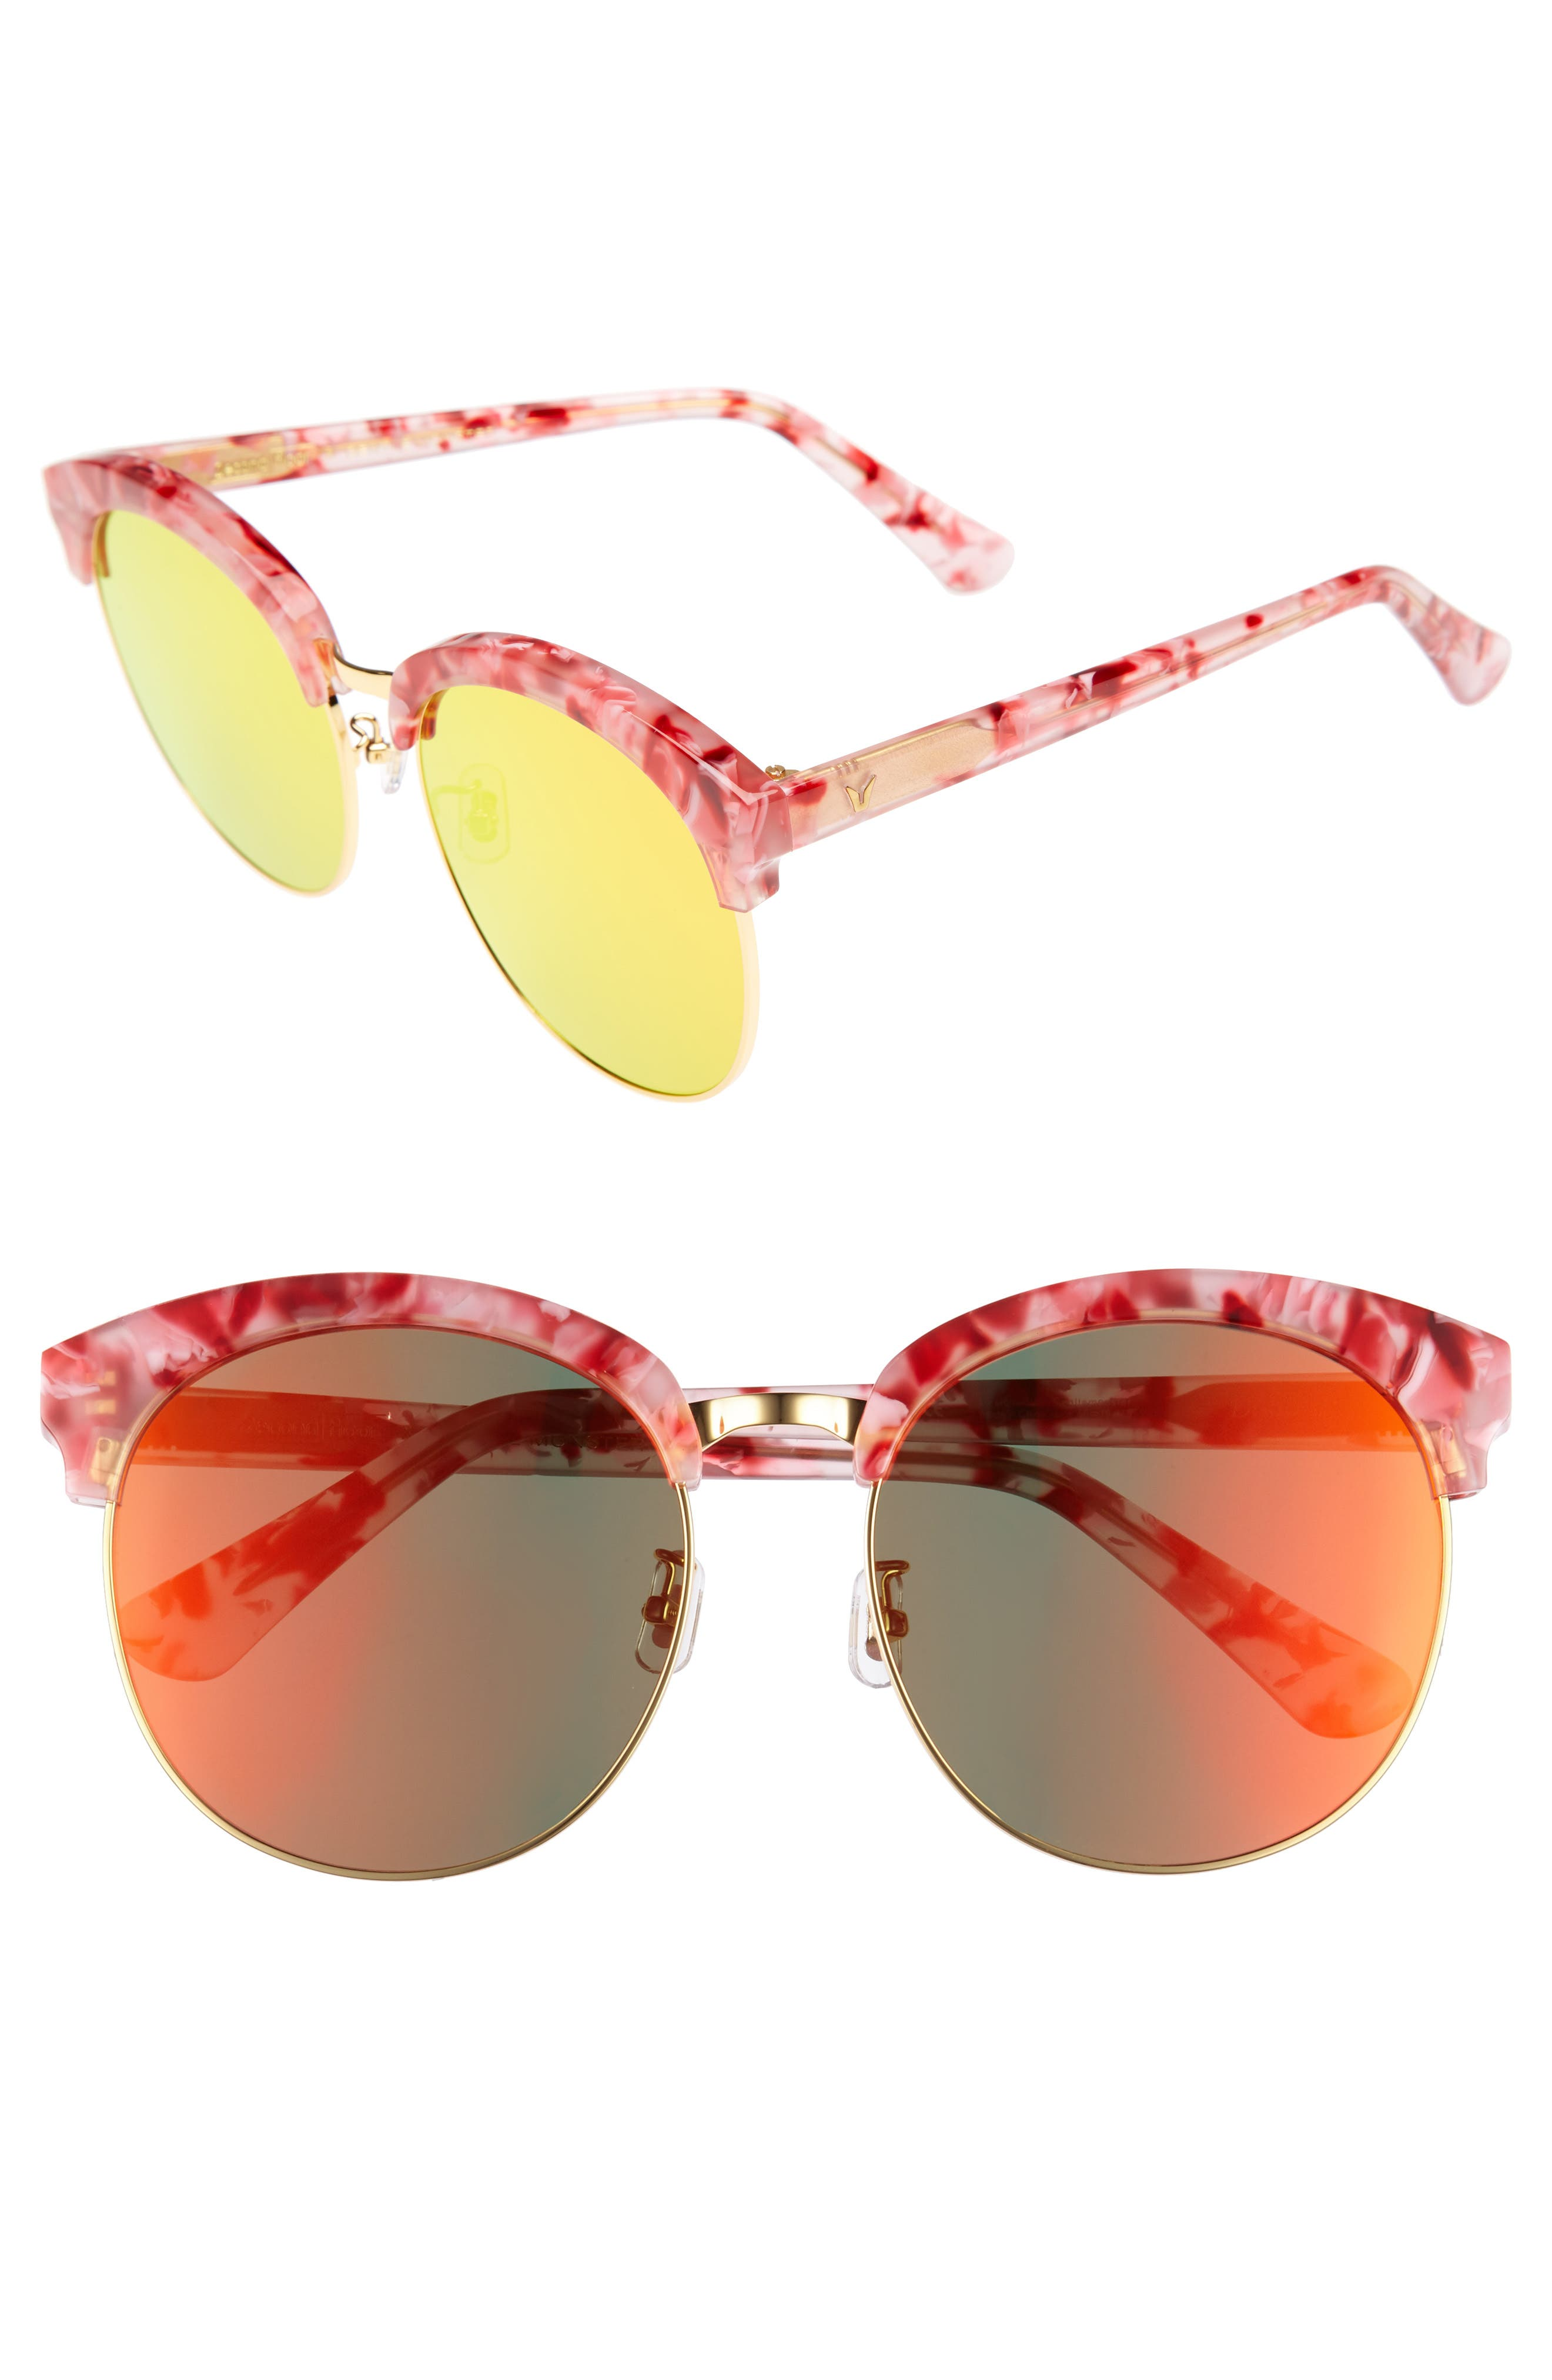 Main Image - Gentle Monster Deborah 60mm Retro Sunglasses